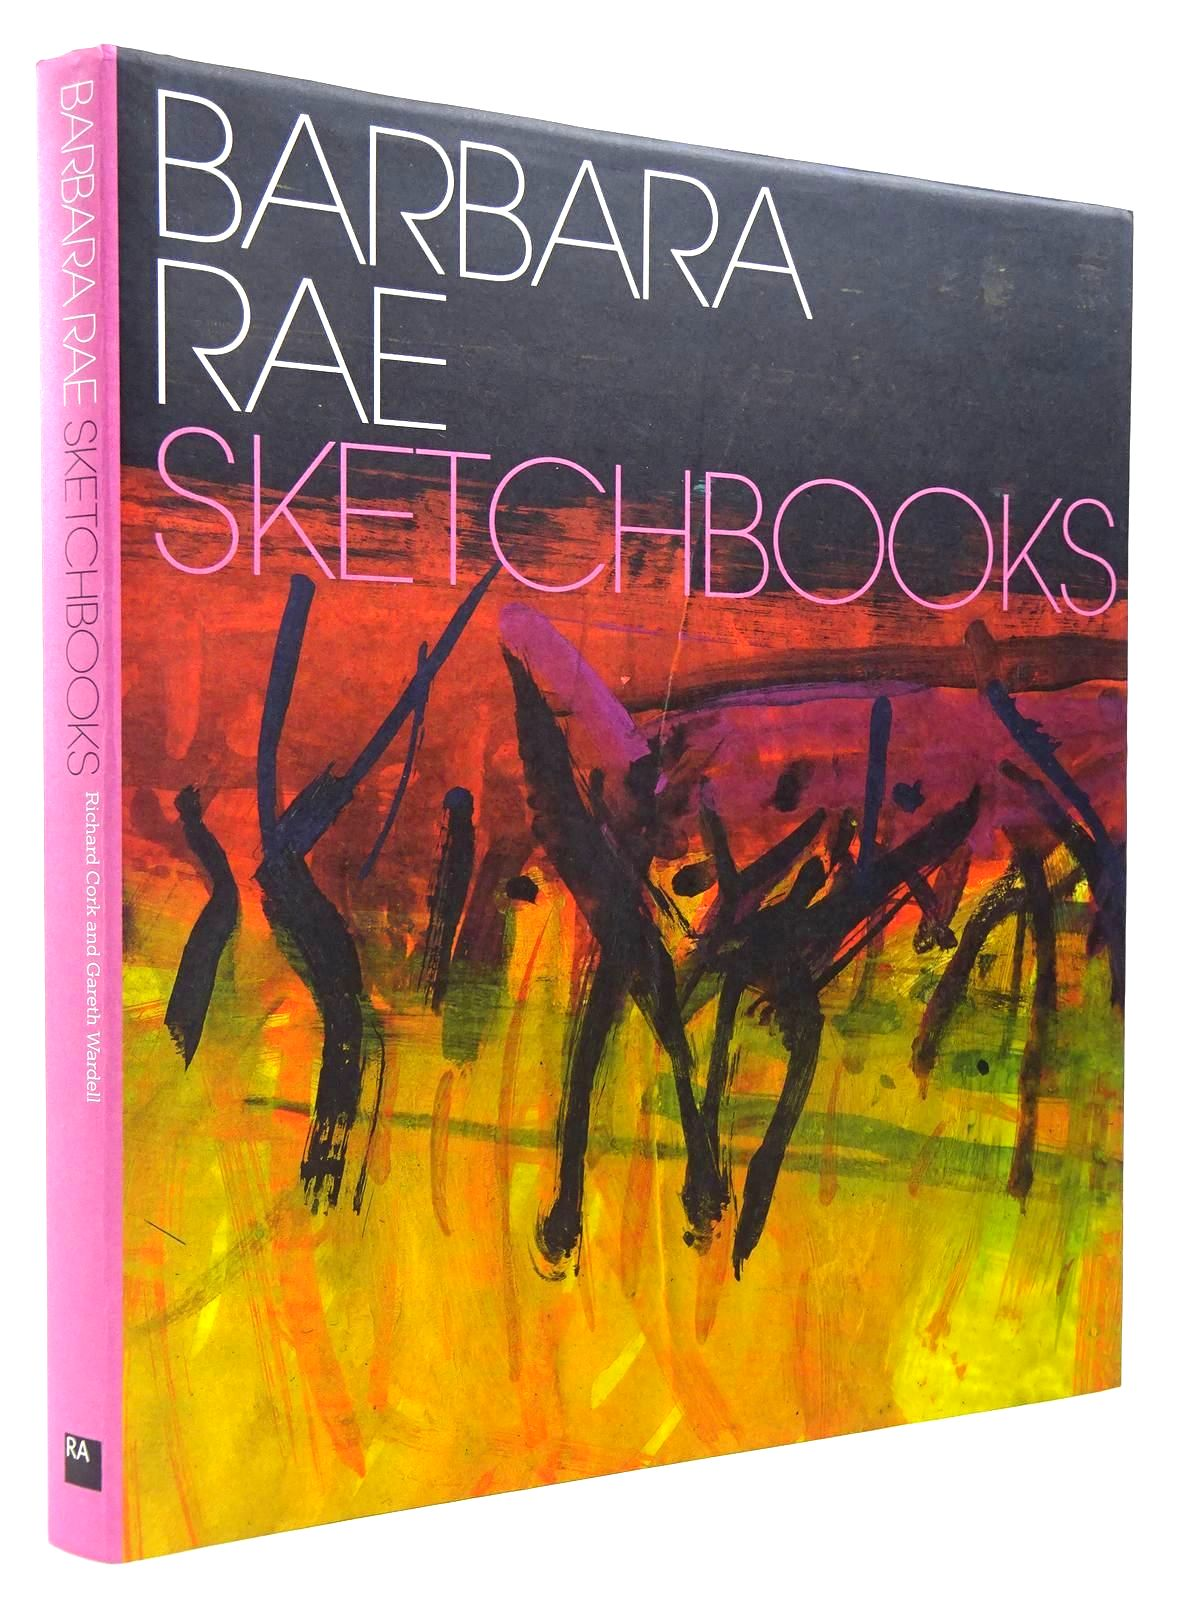 Photo of BARBARA RAE SKETCHBOOKS written by Cork, Richard illustrated by Rae, Barbara published by Royal Academy of Arts (STOCK CODE: 2129420)  for sale by Stella & Rose's Books